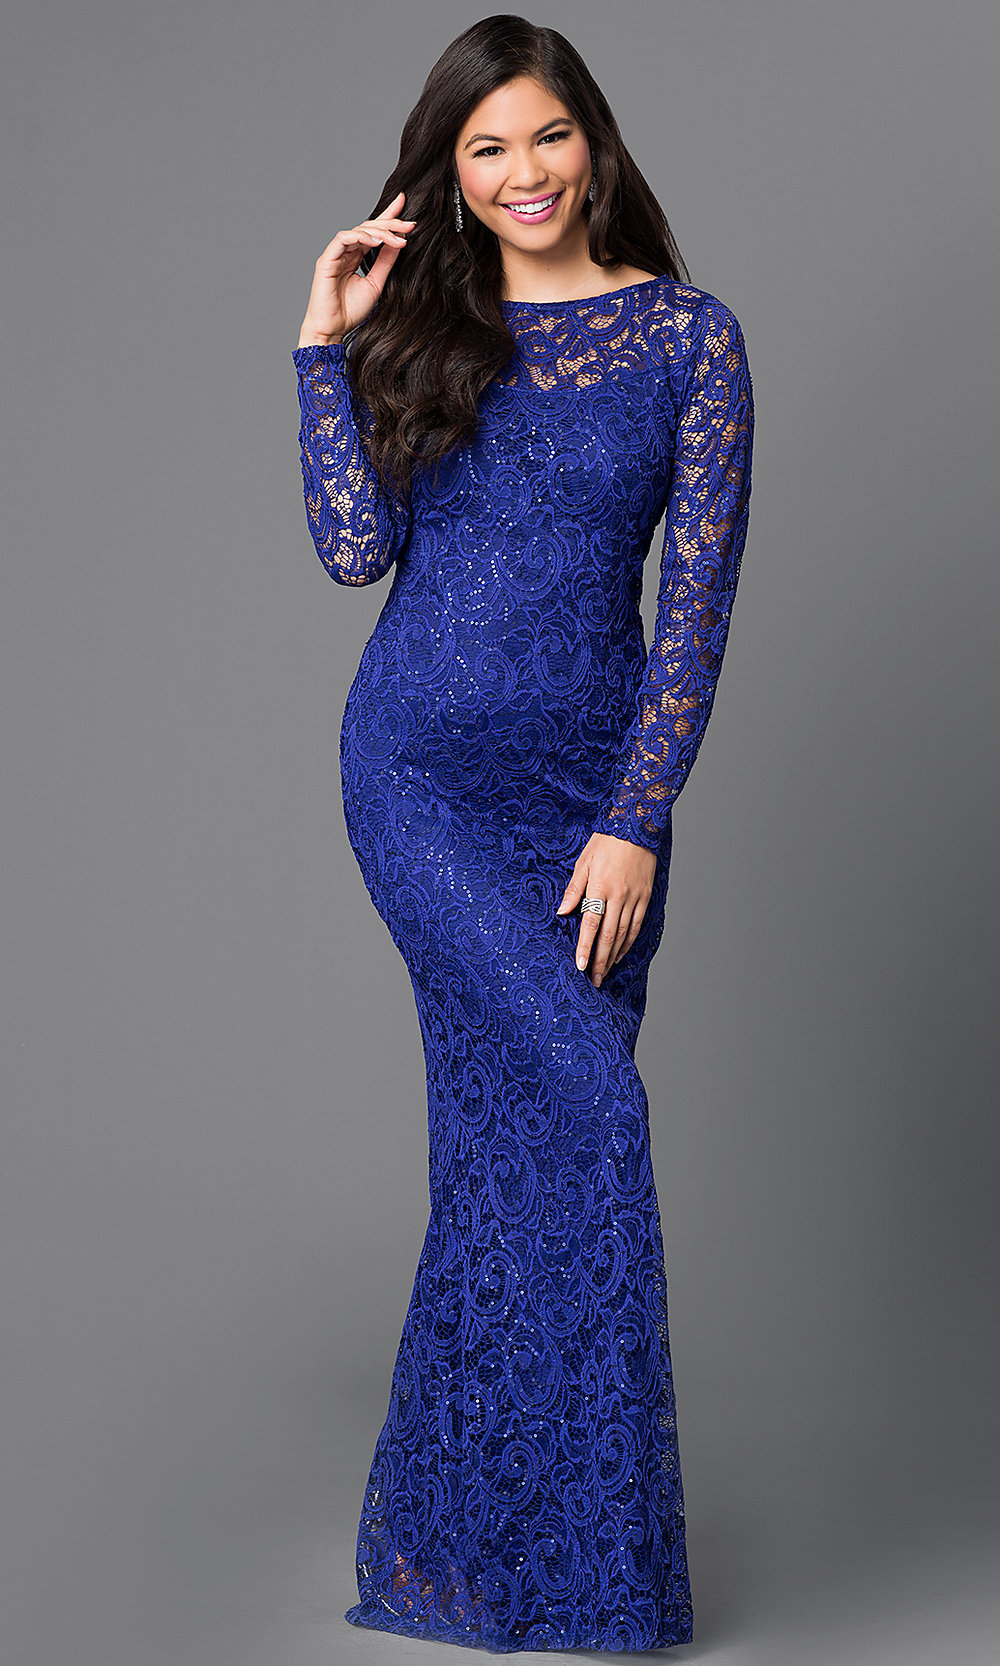 A long sleeve lace dress is a marvelous addition to any wardrobe, allowing women to be ready in an instant for dress up occasions and offering options for fun and funky casual ensembles. For formal events, a long sleeve lace dress might be short or long.